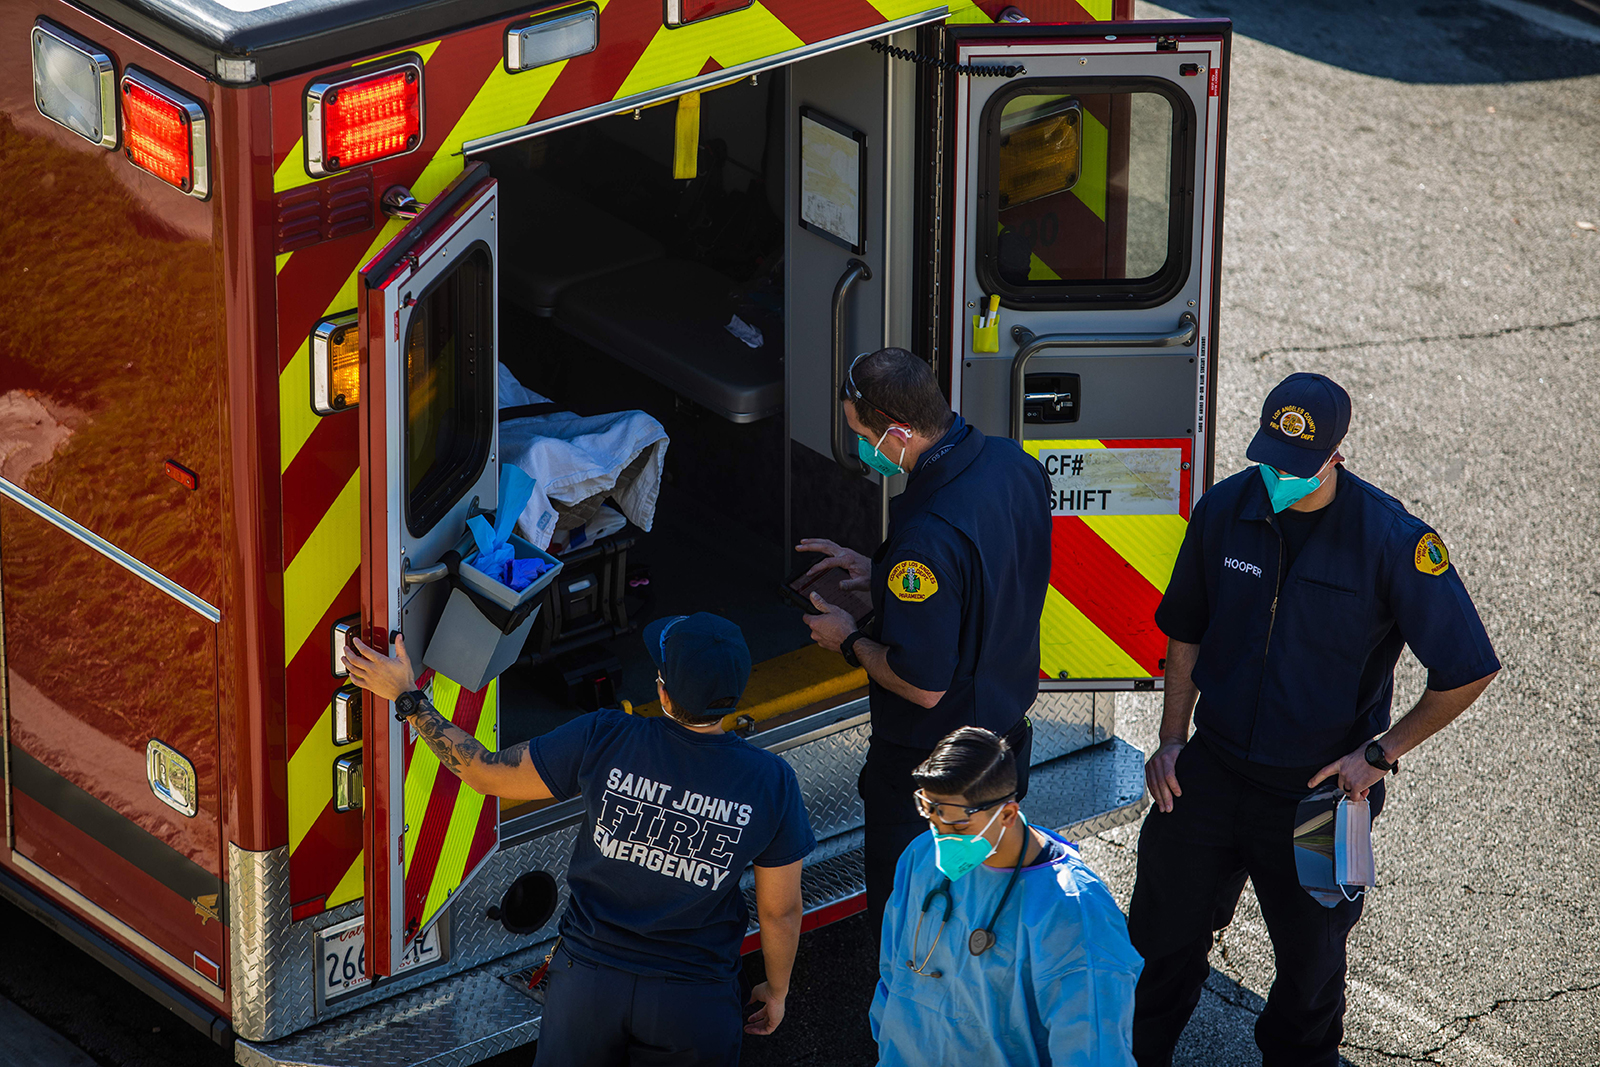 After administering oxygen, County of Los Angeles paramedics load a potential Covid-19 patient in the ambulance before transporting him to a hospital in Hawthorne, California on December 29, 2020.